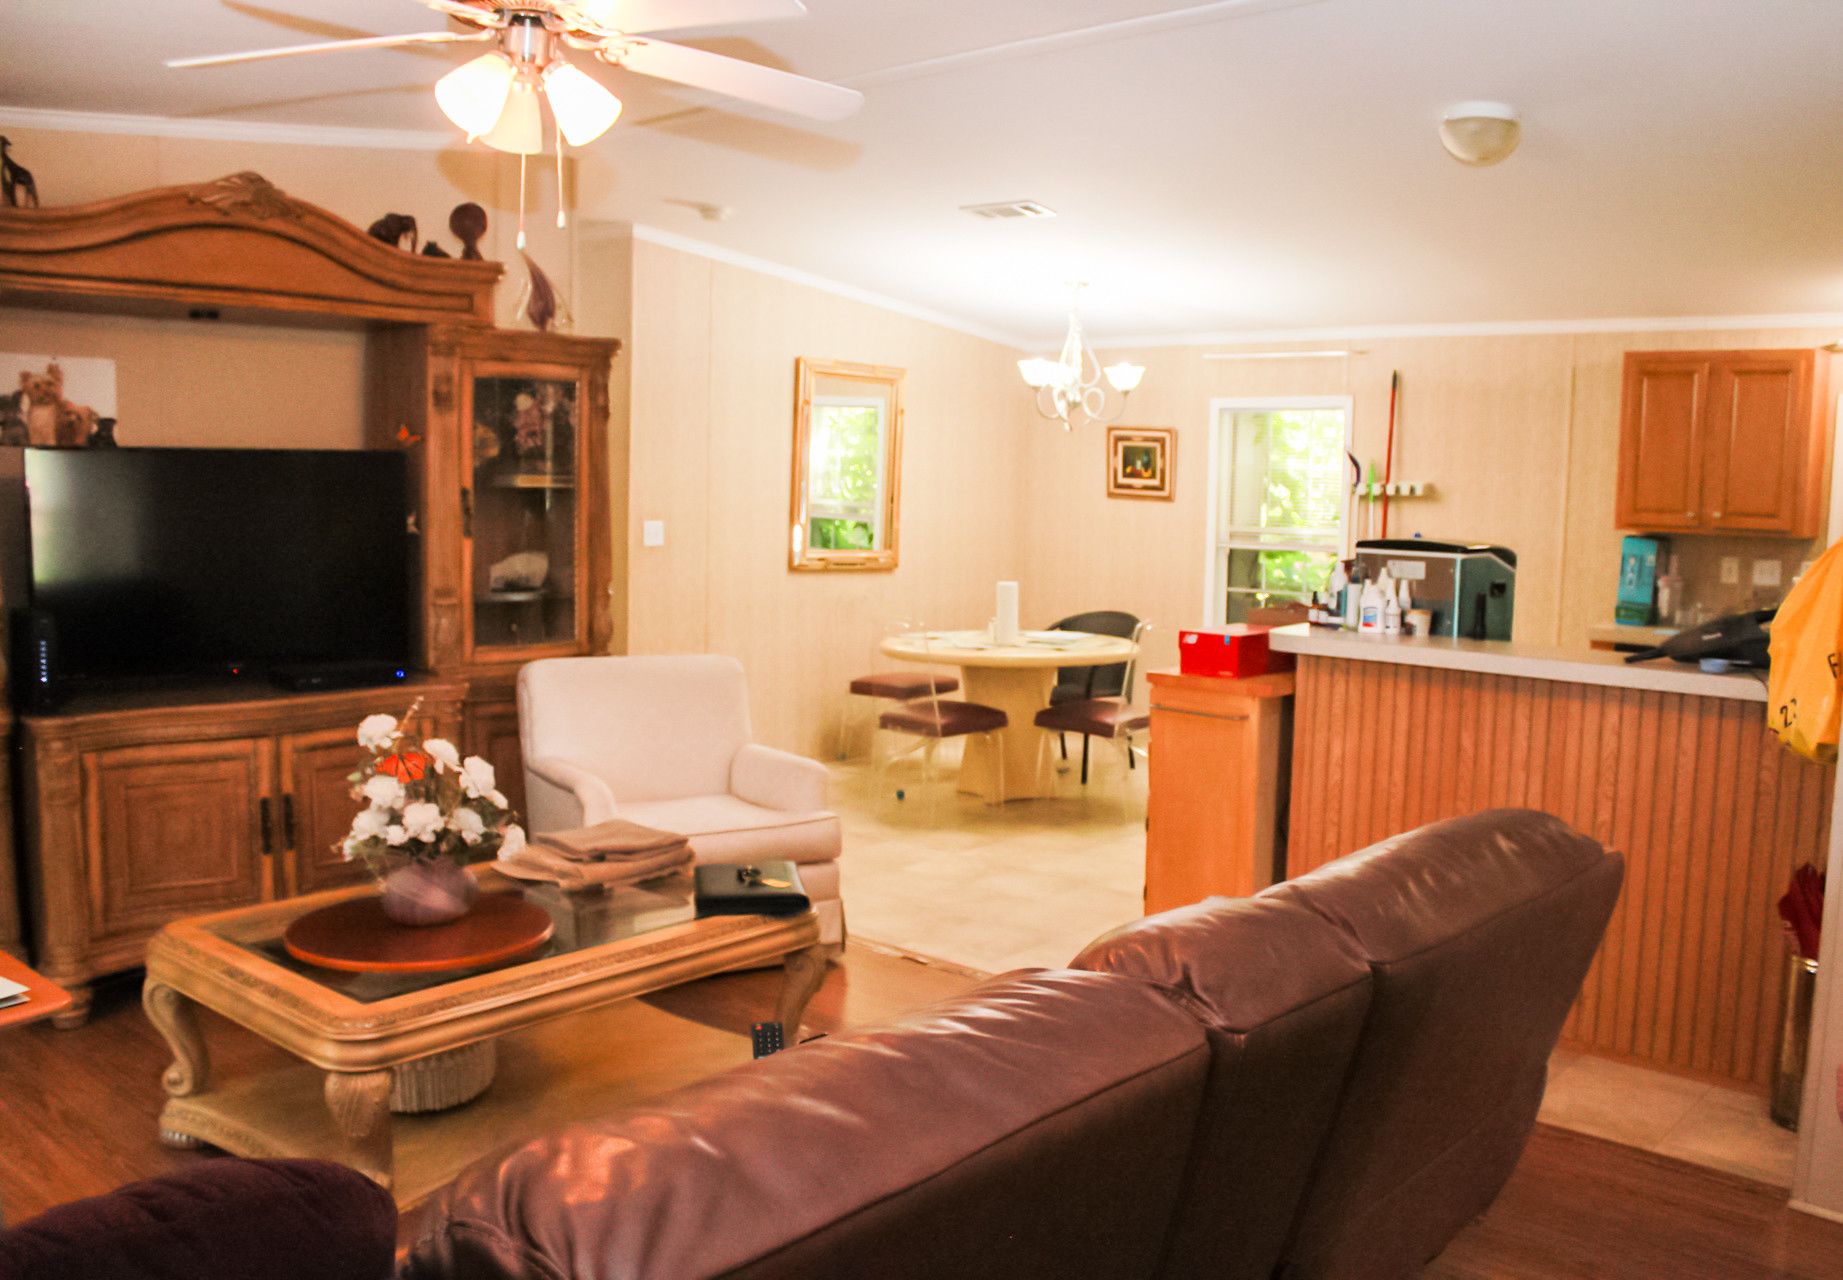 4-Bedroom Mobile Home In Sandalfoot Cove